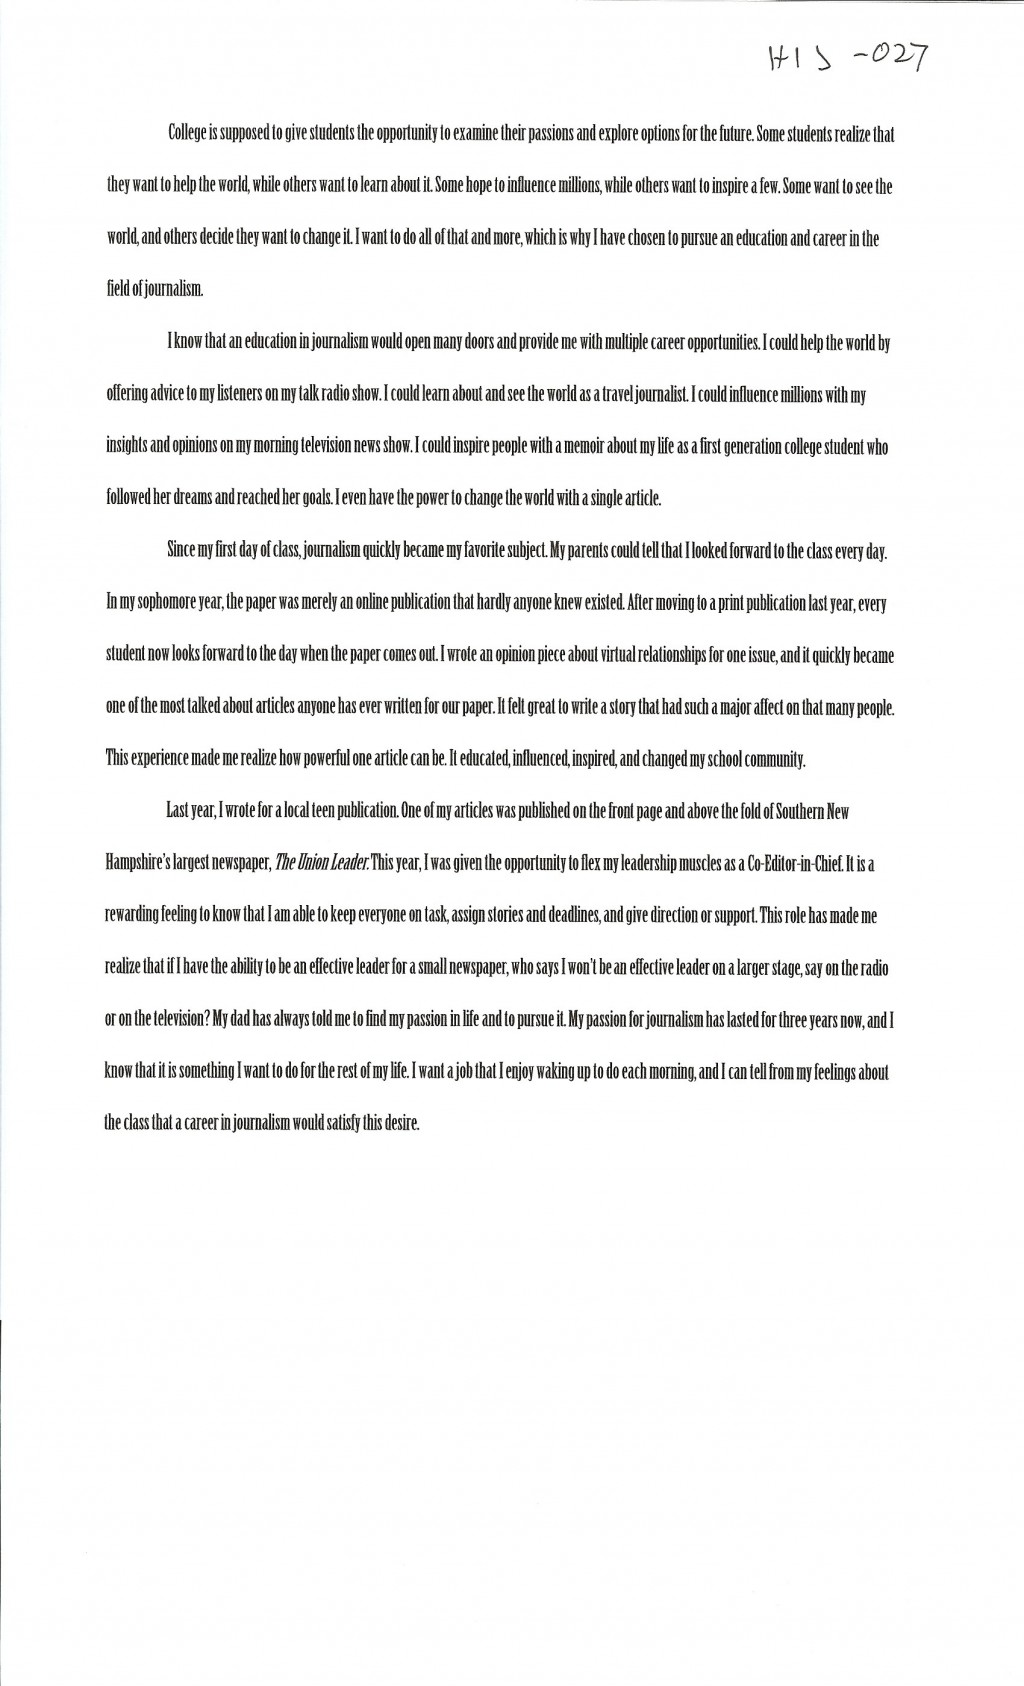 026 Alexa Serrecchia Essay Example Scholarships With Singular Essays Without Writing For High School Juniors Class Of 2020 No 2019 Large